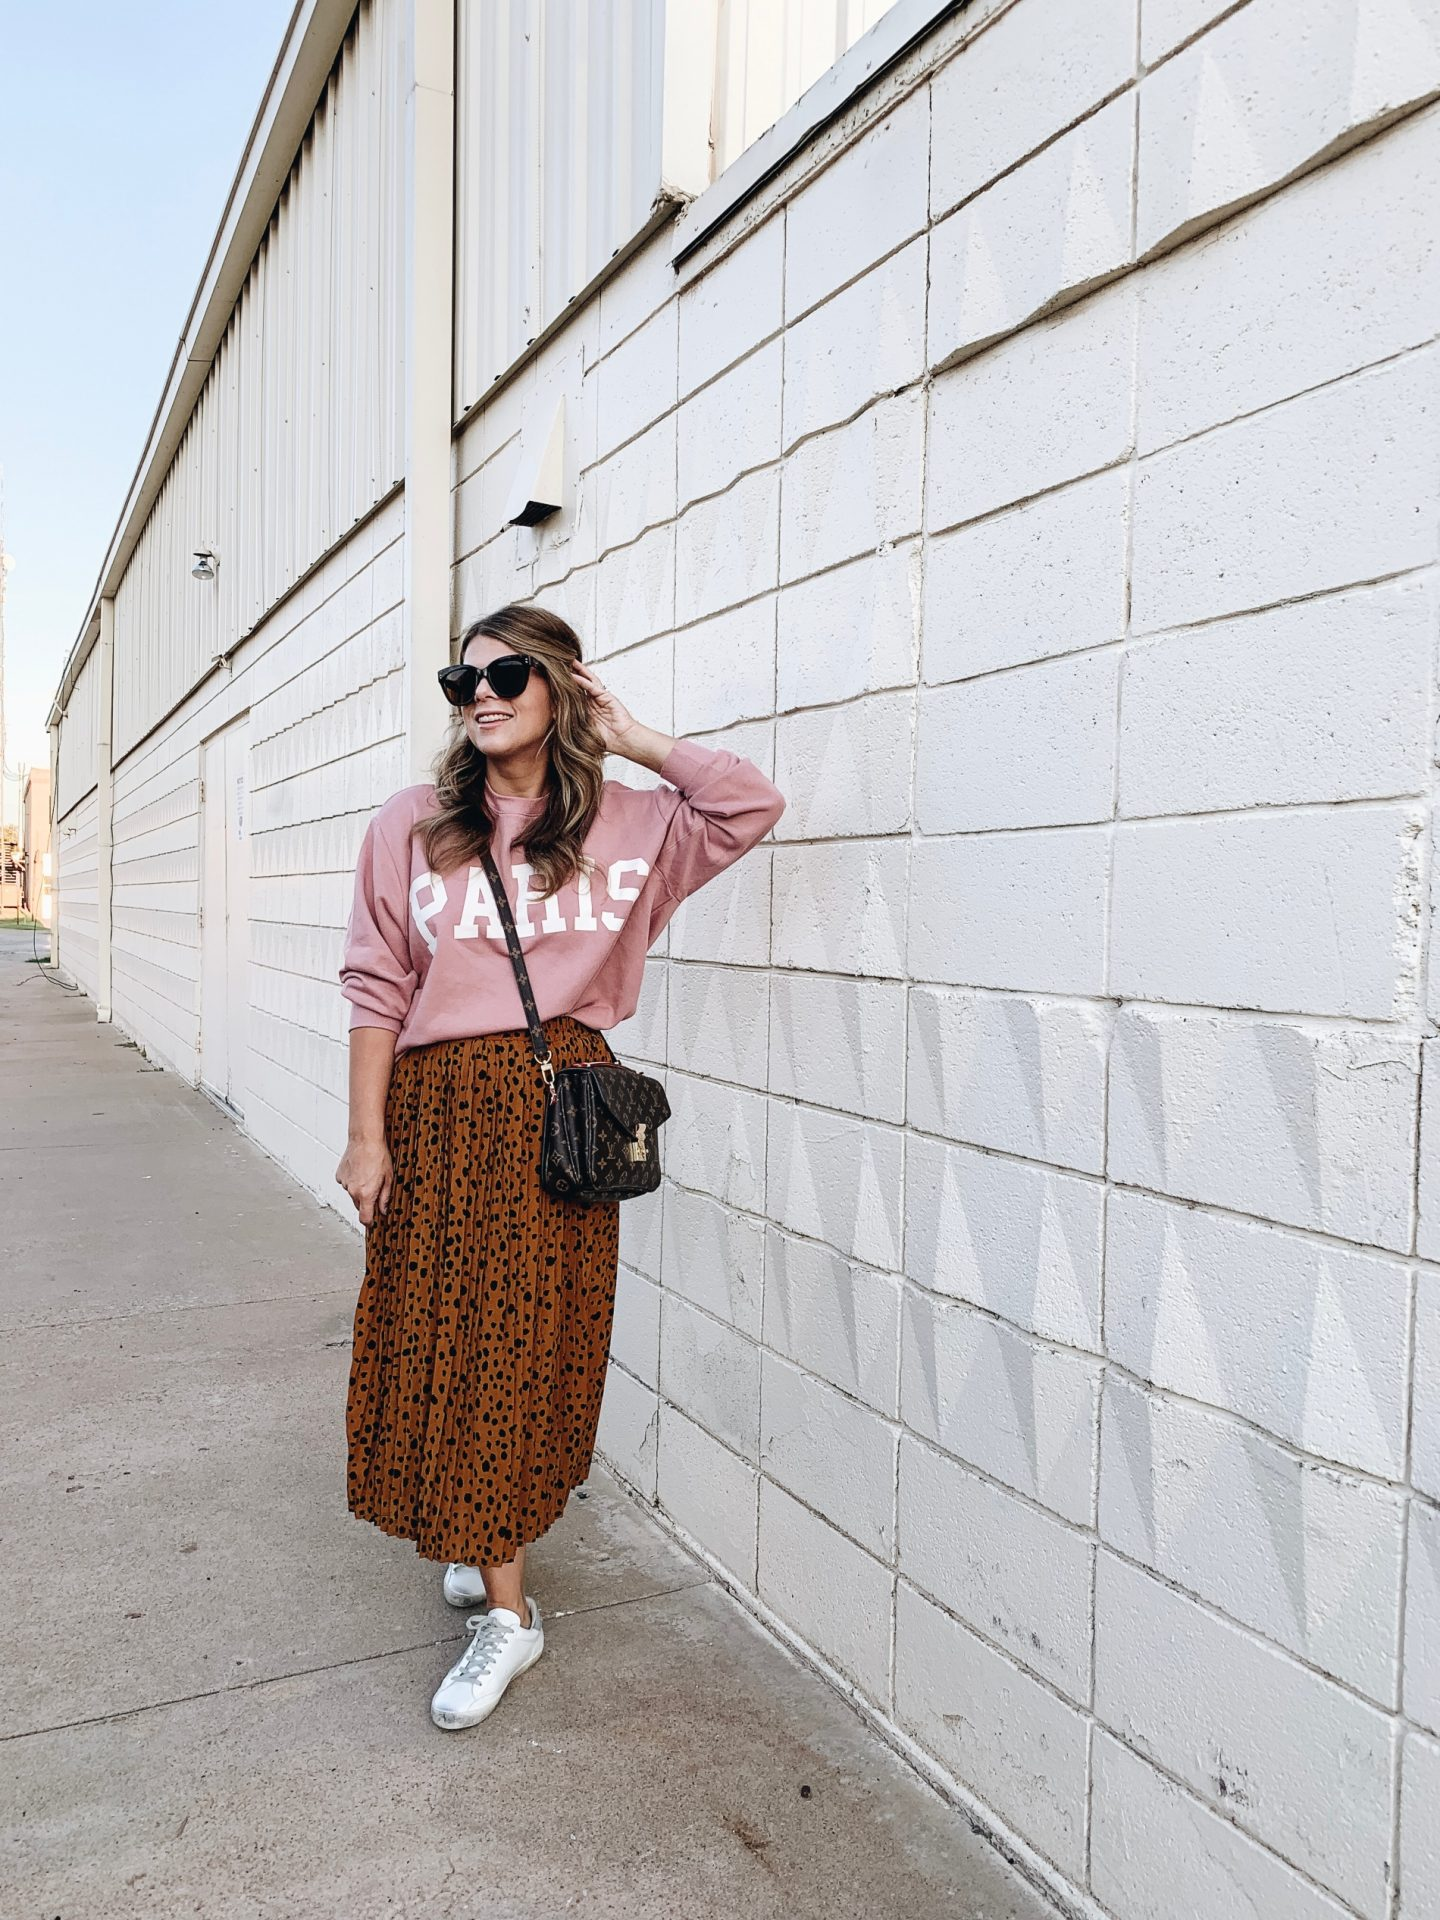 Graphic tee, Paris, leopard skirt, Golden Goose, Le Spec, Casual Style, Target Style